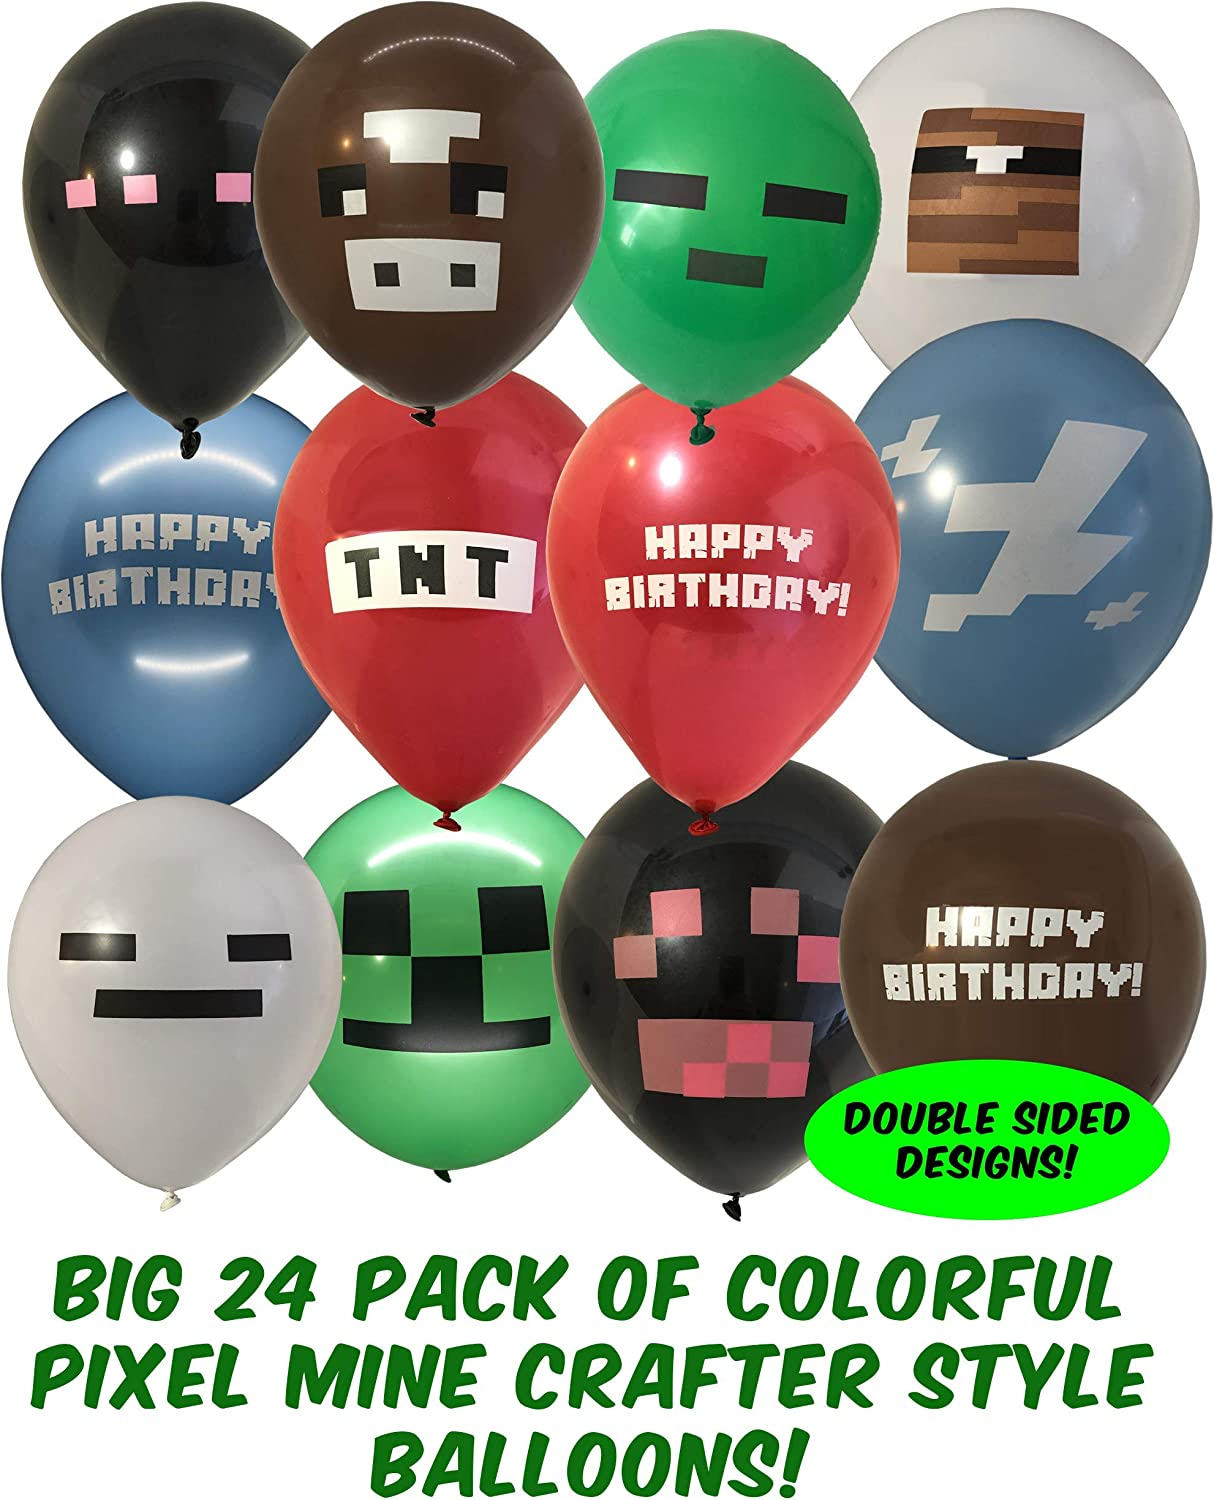 Miner Crafting Style Decorations Pixel Game Miner craft Theme Party Favors Green Pixel Style Game Birthday Party Decorations 24pcs 12 Pixel Style Game Balloons